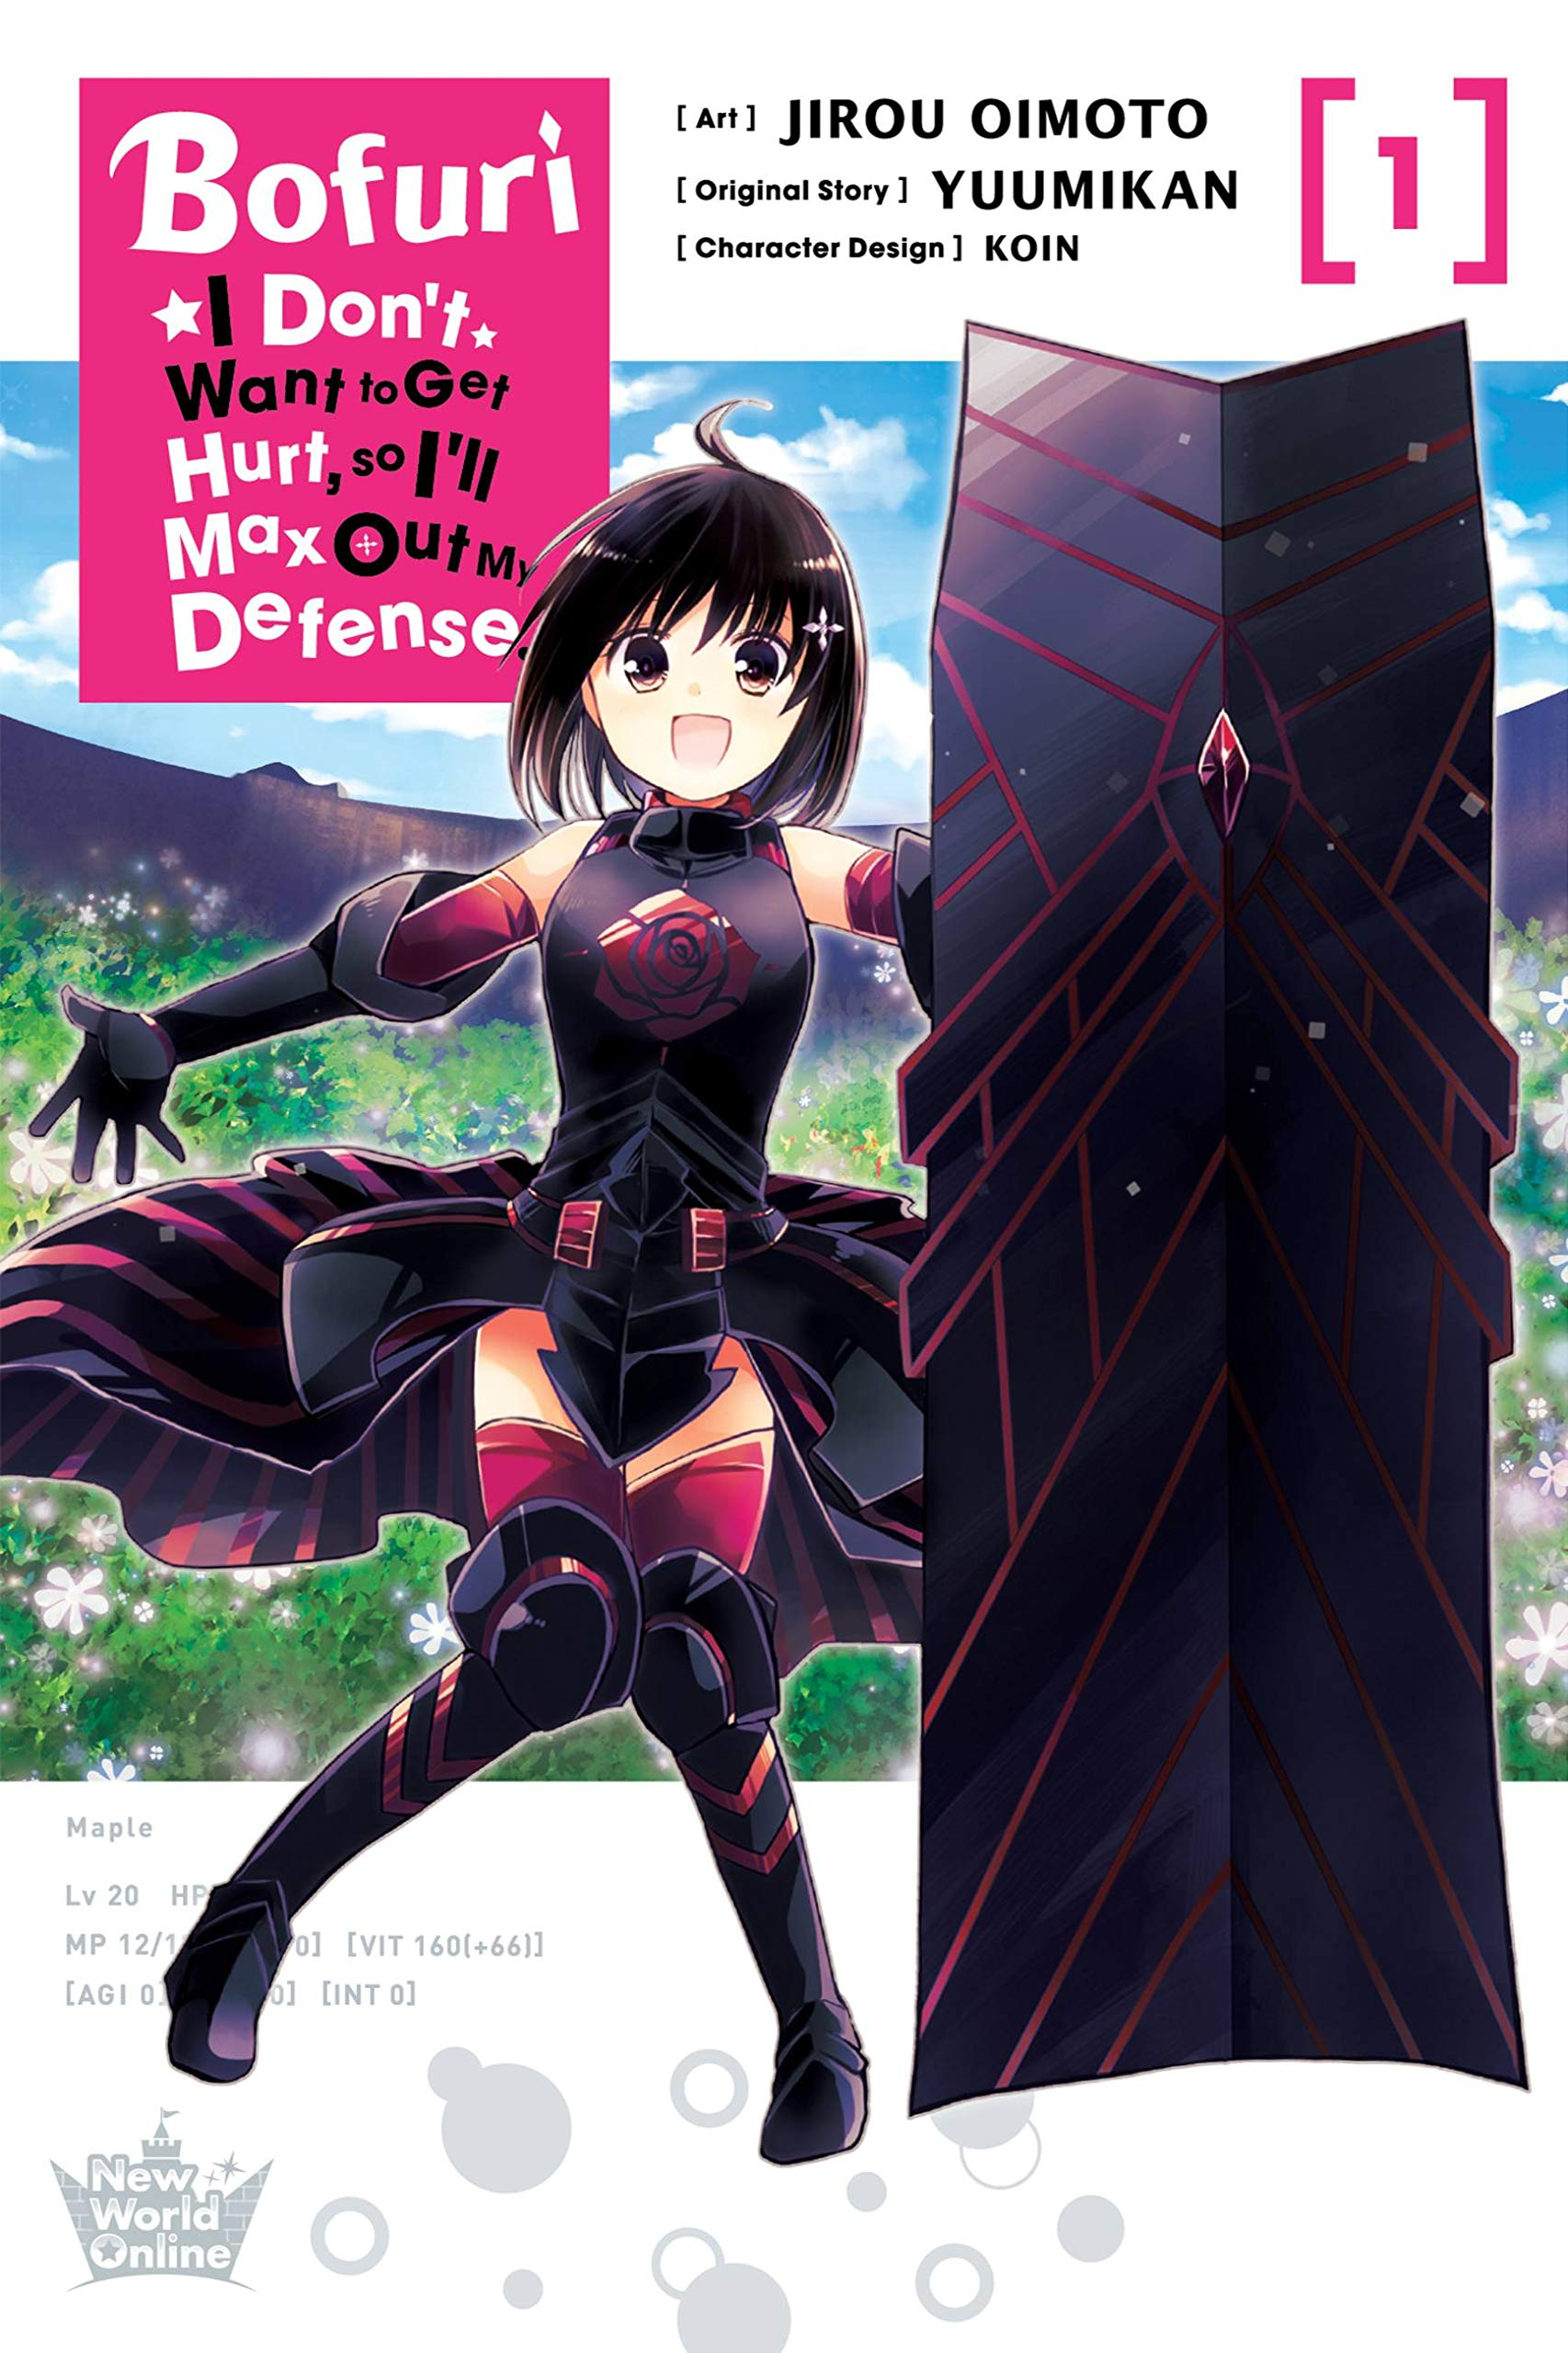 Featured image for Bofuri: I Don't Want to Get Hurt, so I'll Max Out My Defense. Volume 1 Review